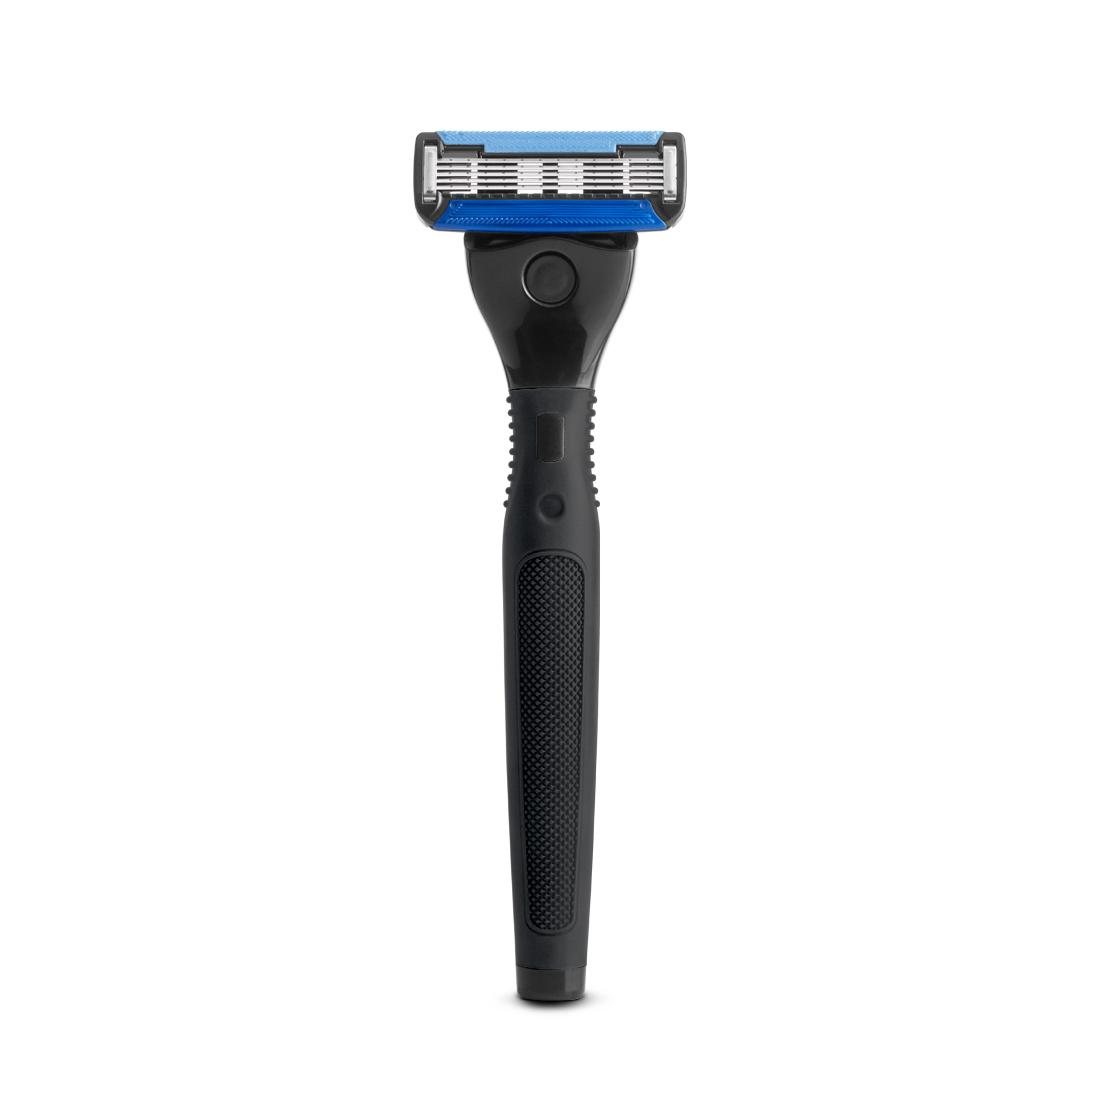 Ustraa GEAR 5 - Black Double Coated 5 Blade Razor for Men for Close Shave with Precision Blade for Shaping